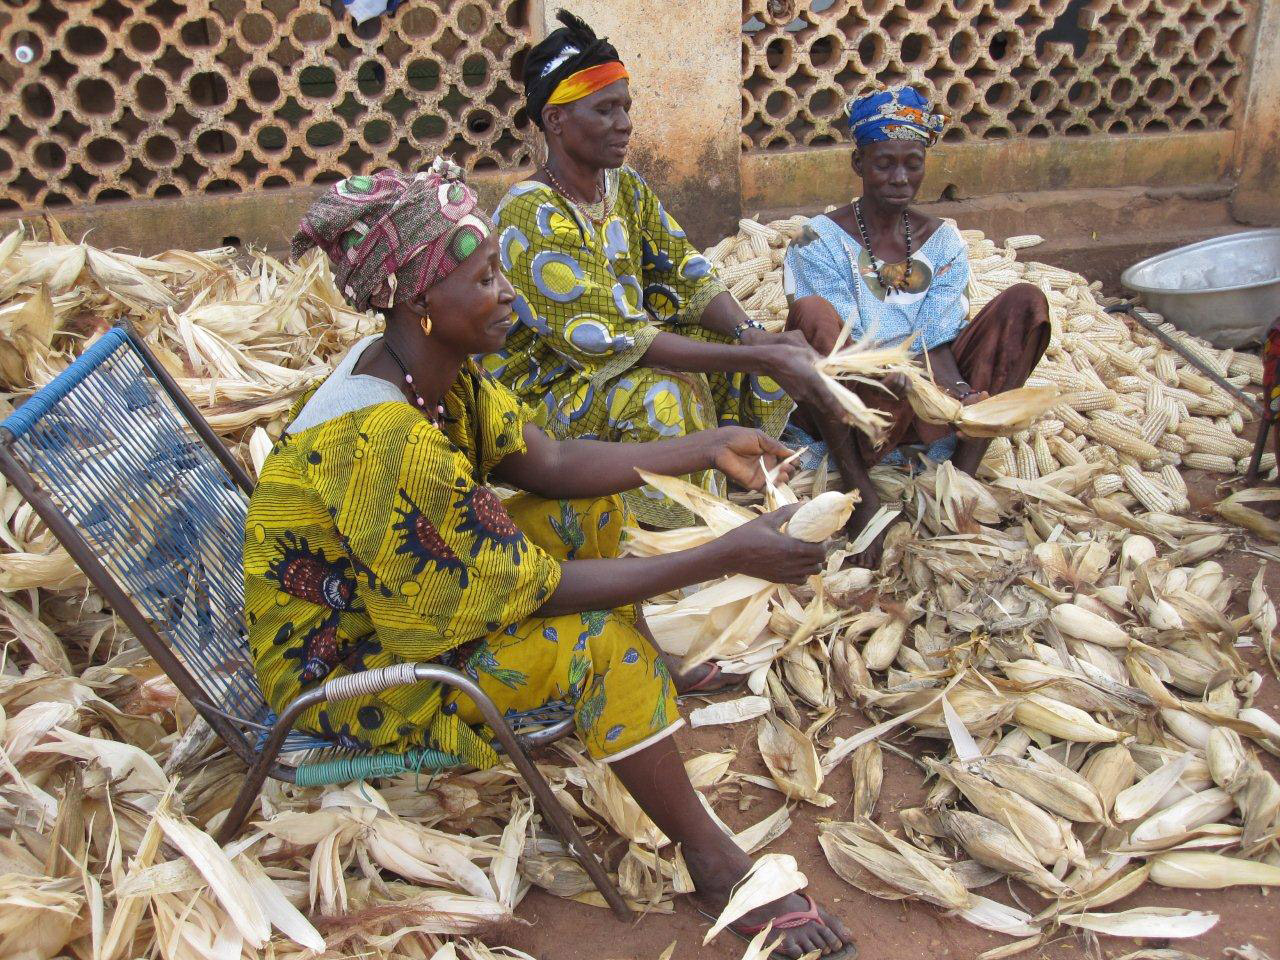 Women peeling maize